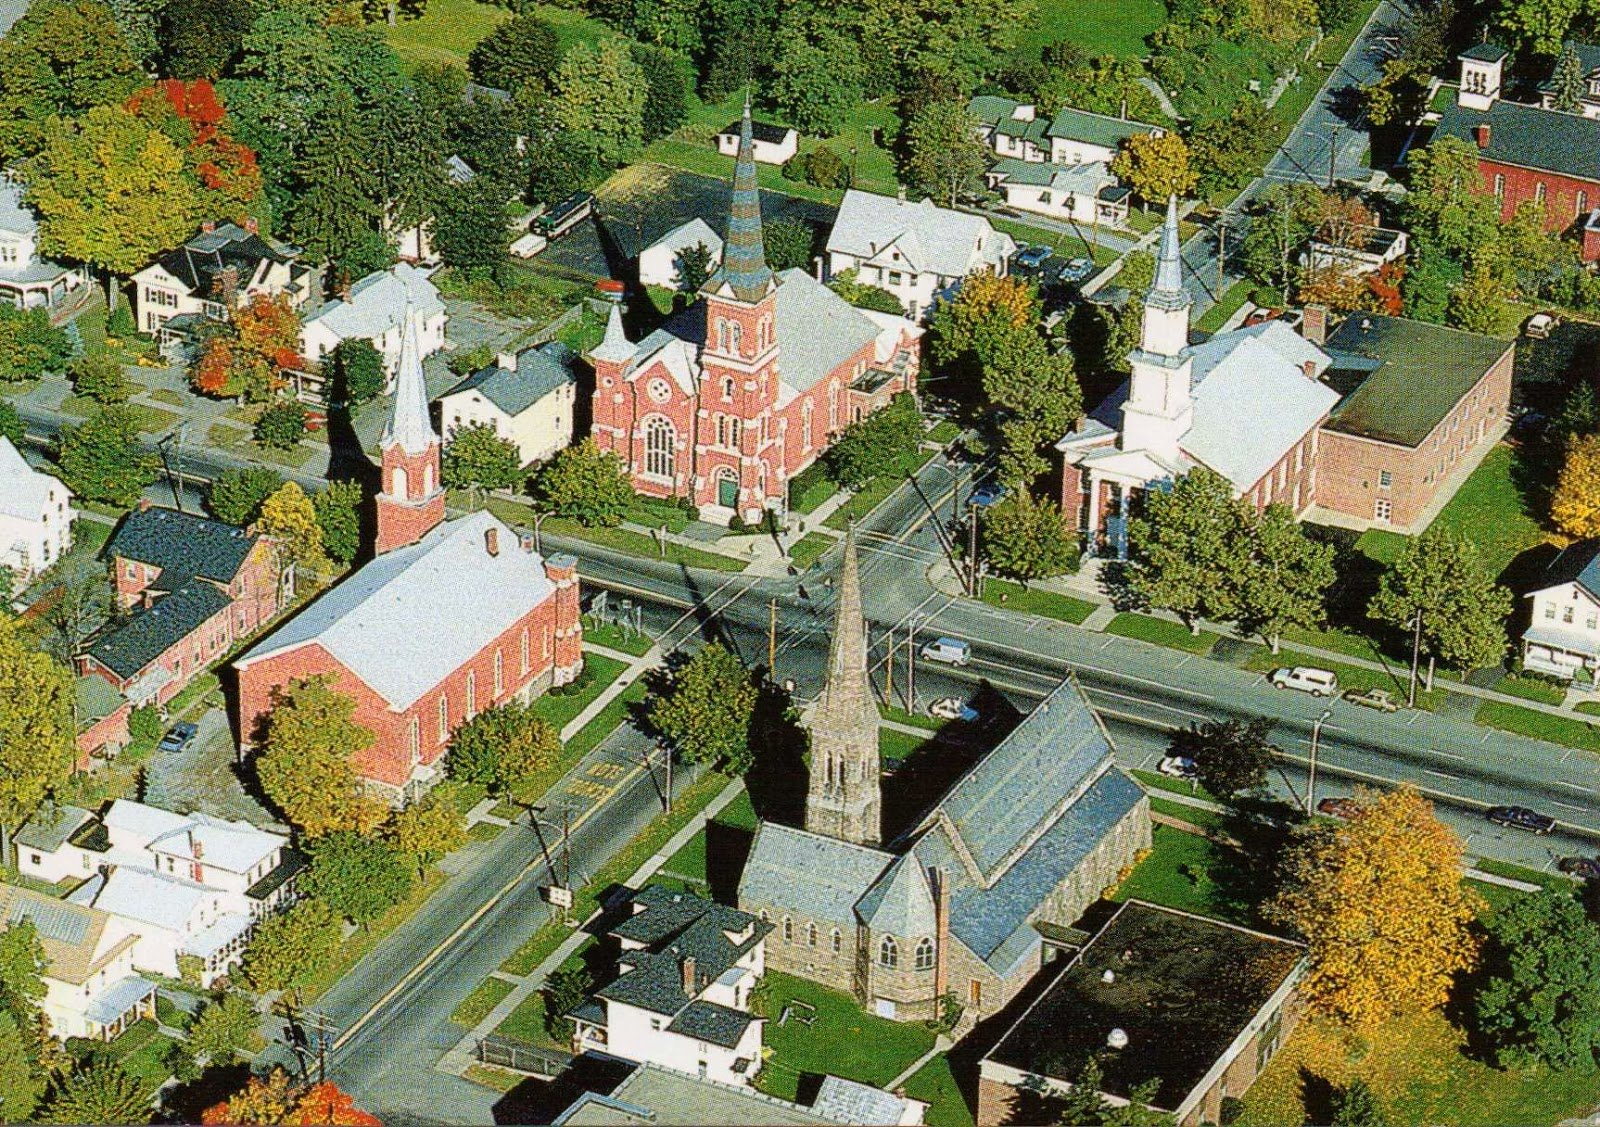 A birds-eye view of Palmyra's four historic churches (https://theothernewyorkststate.blogspot.com/2014/01/palmyra-ny-four-famous-churches.html)